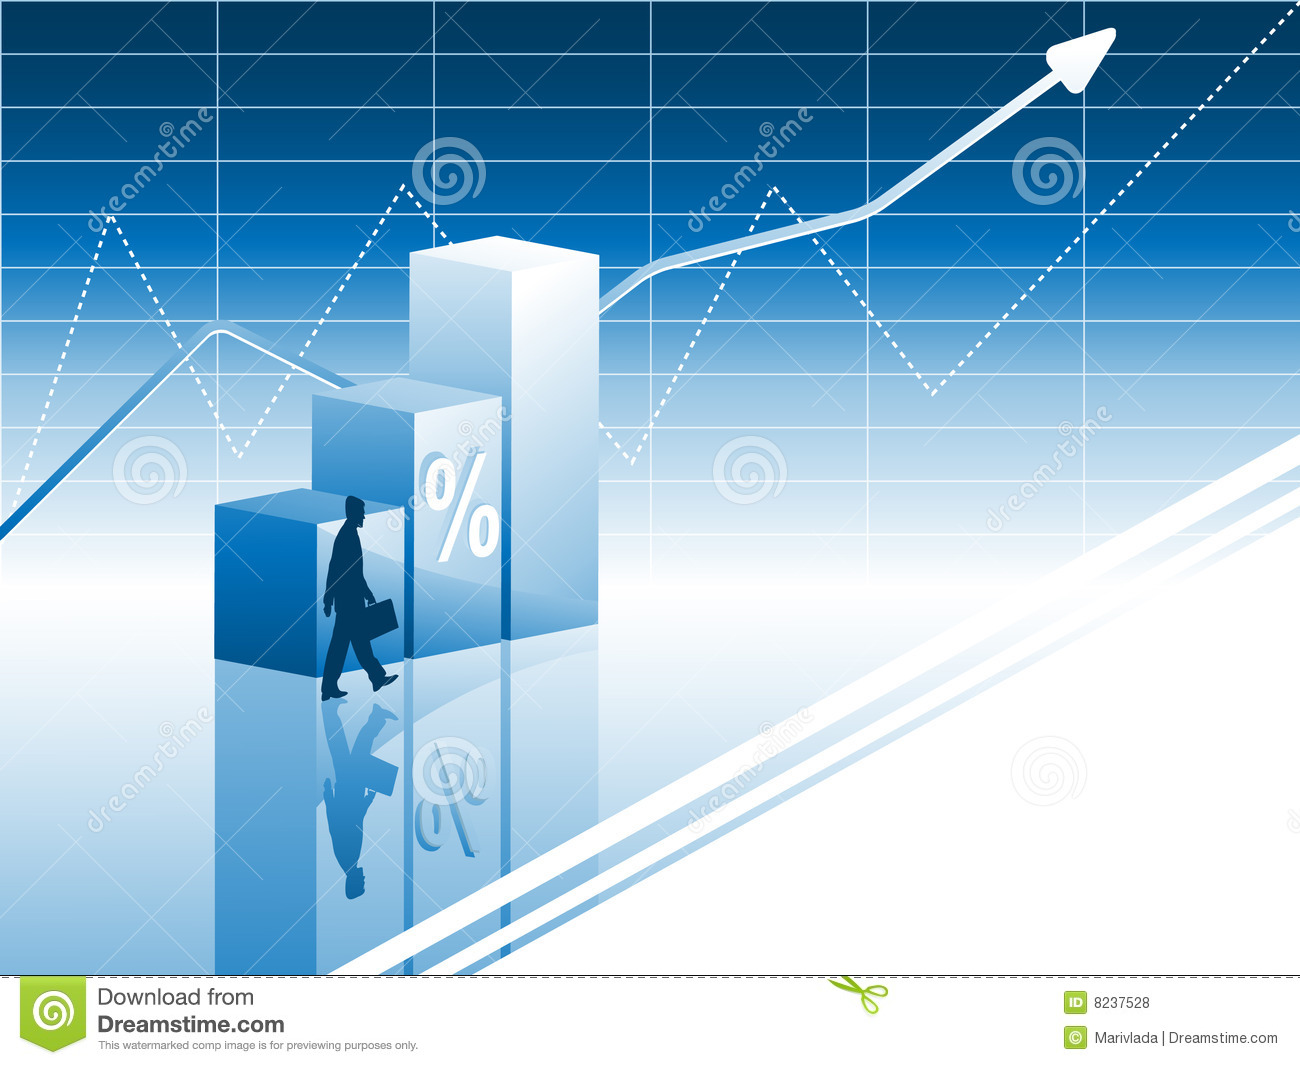 Vector business background royalty free stock photos image 8237528